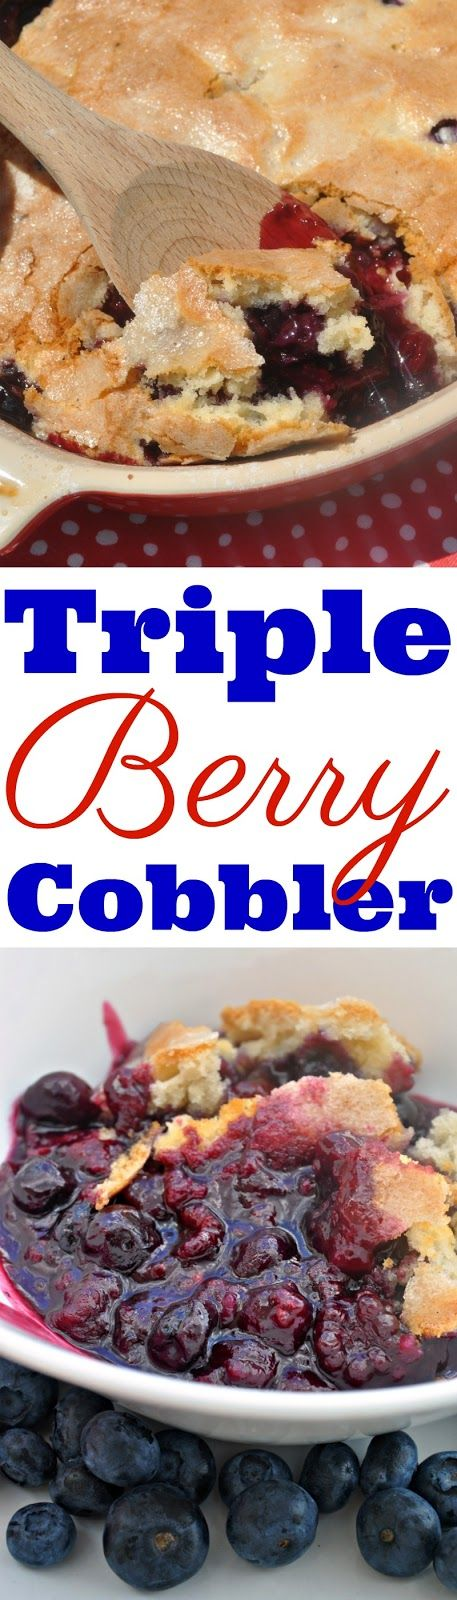 Food Hussy Recipe: Triple Berry Cobbler for the 4th of July!